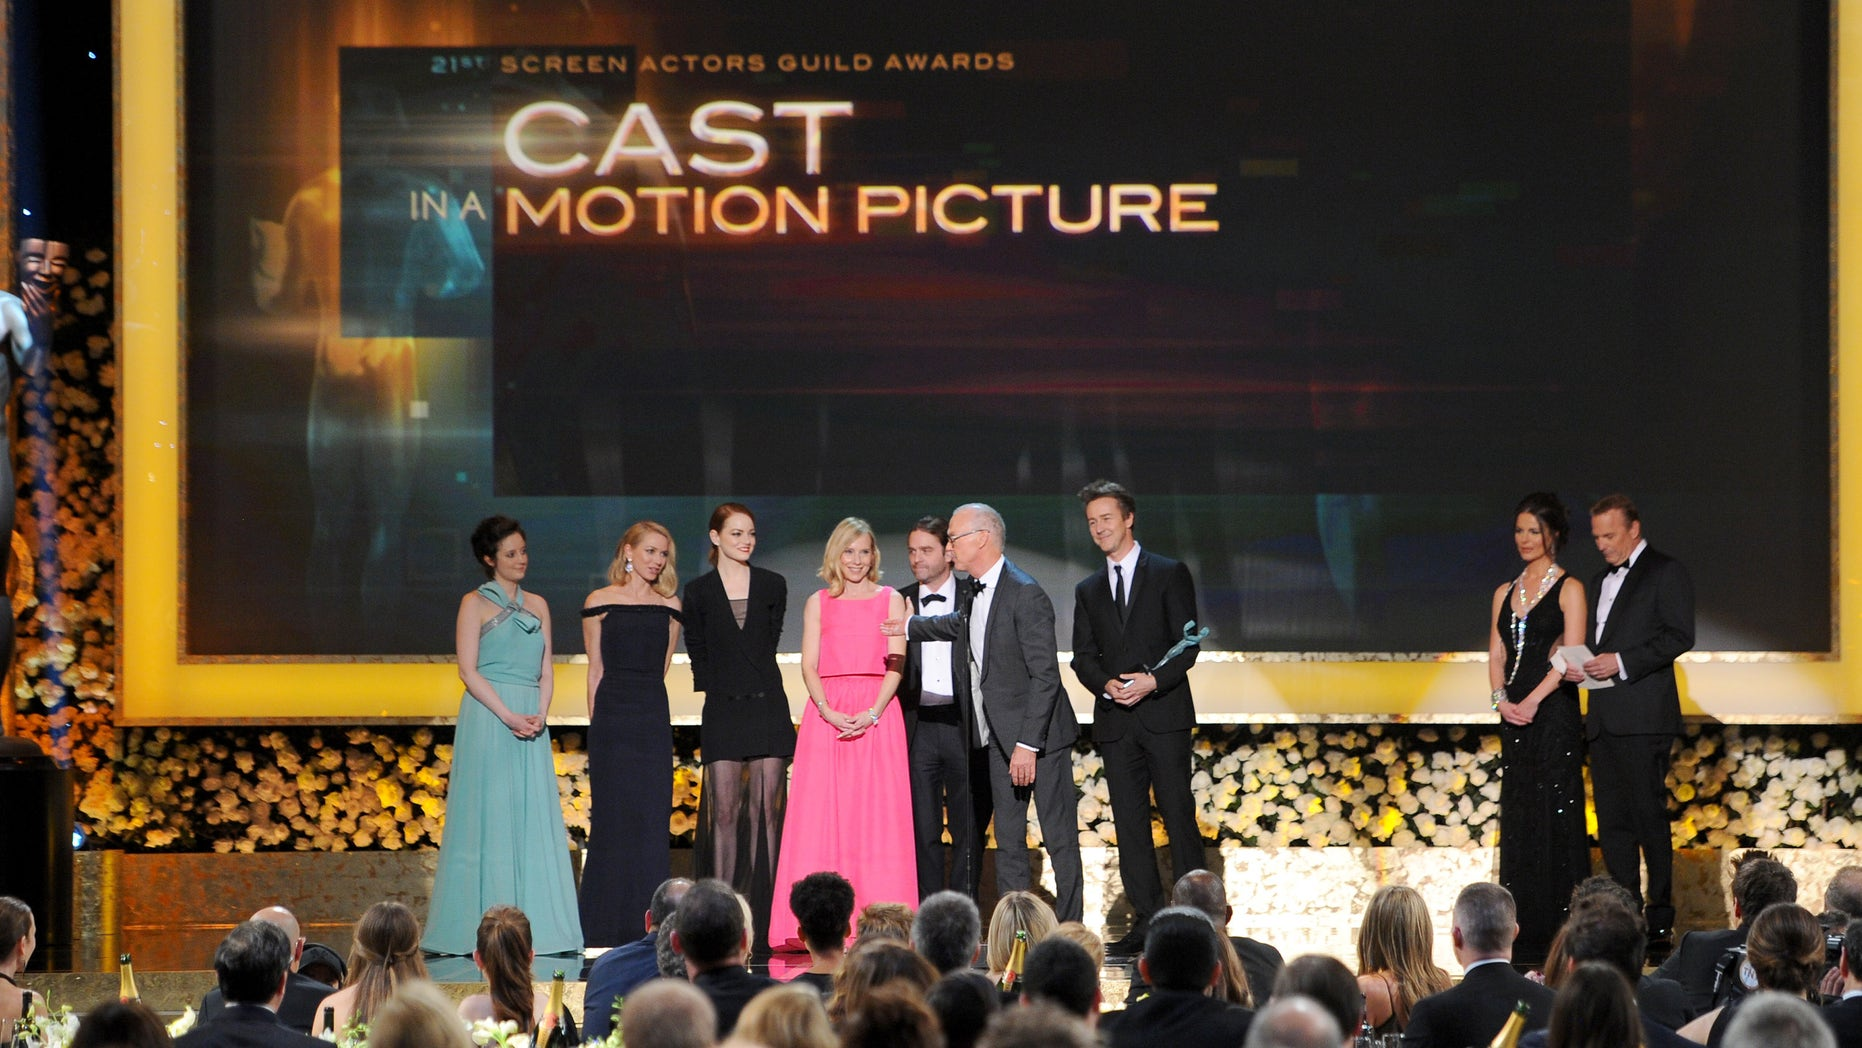 """The cast of """"Birdman"""" accepts the award for outstanding performance by a cast in a motion picture on stage during the 21st annual Screen Actors Guild Awards at the Shrine Auditorium on Sunday, Jan. 25, 2015, in Los Angeles. (Photo by Vince Bucci/Invision/AP)"""